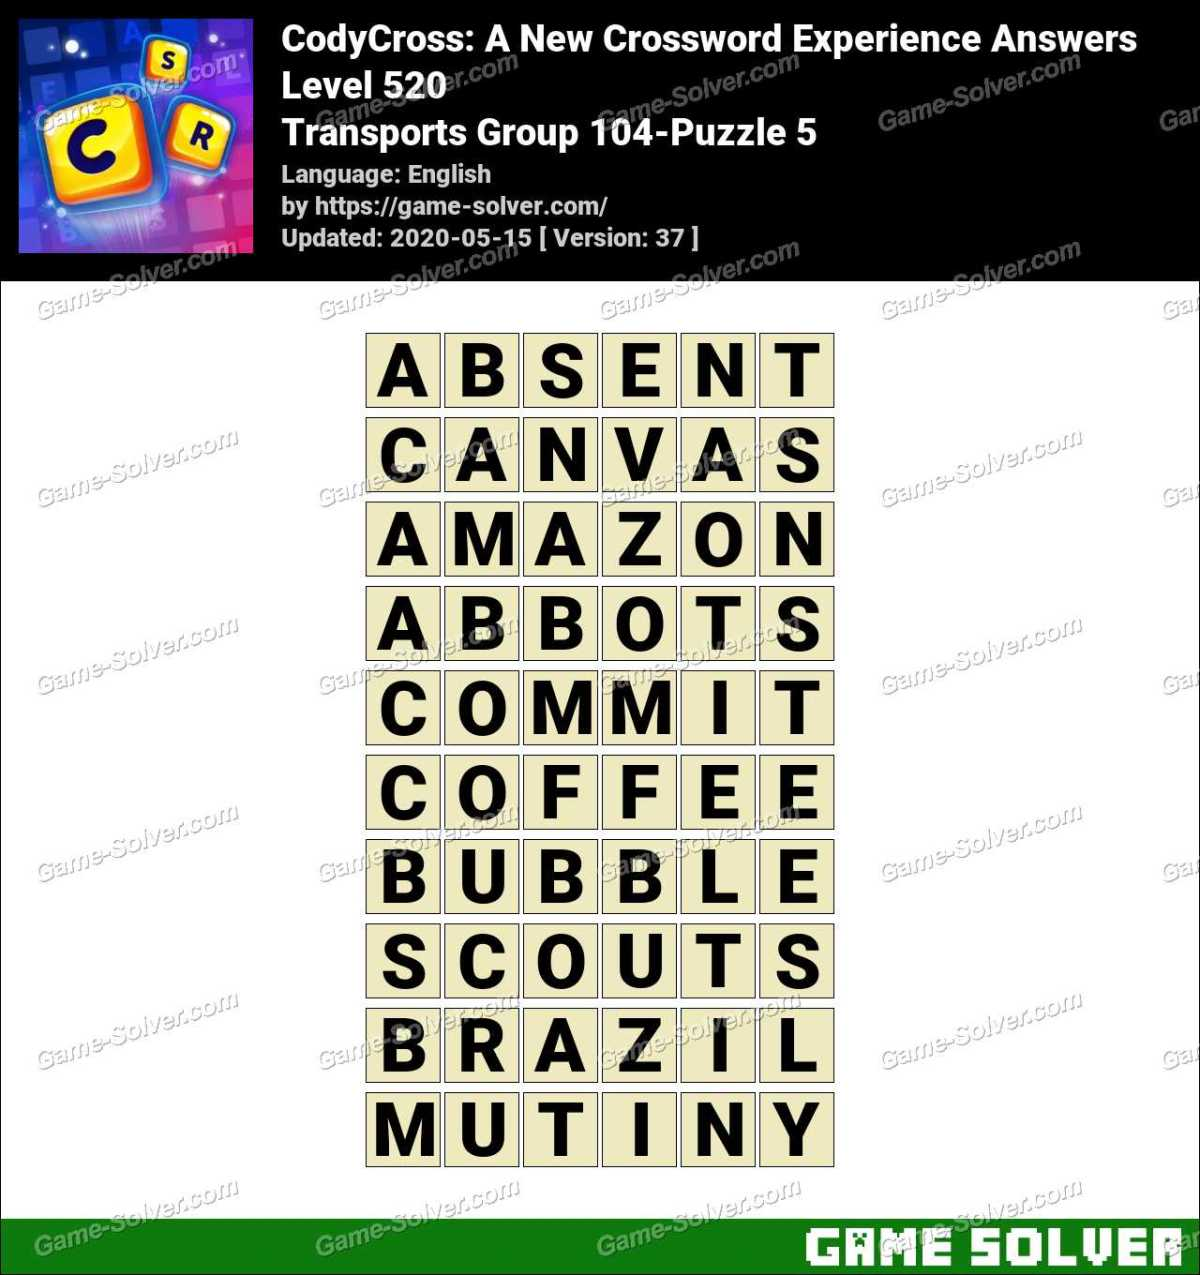 CodyCross Transports Group 104-Puzzle 5 Answers